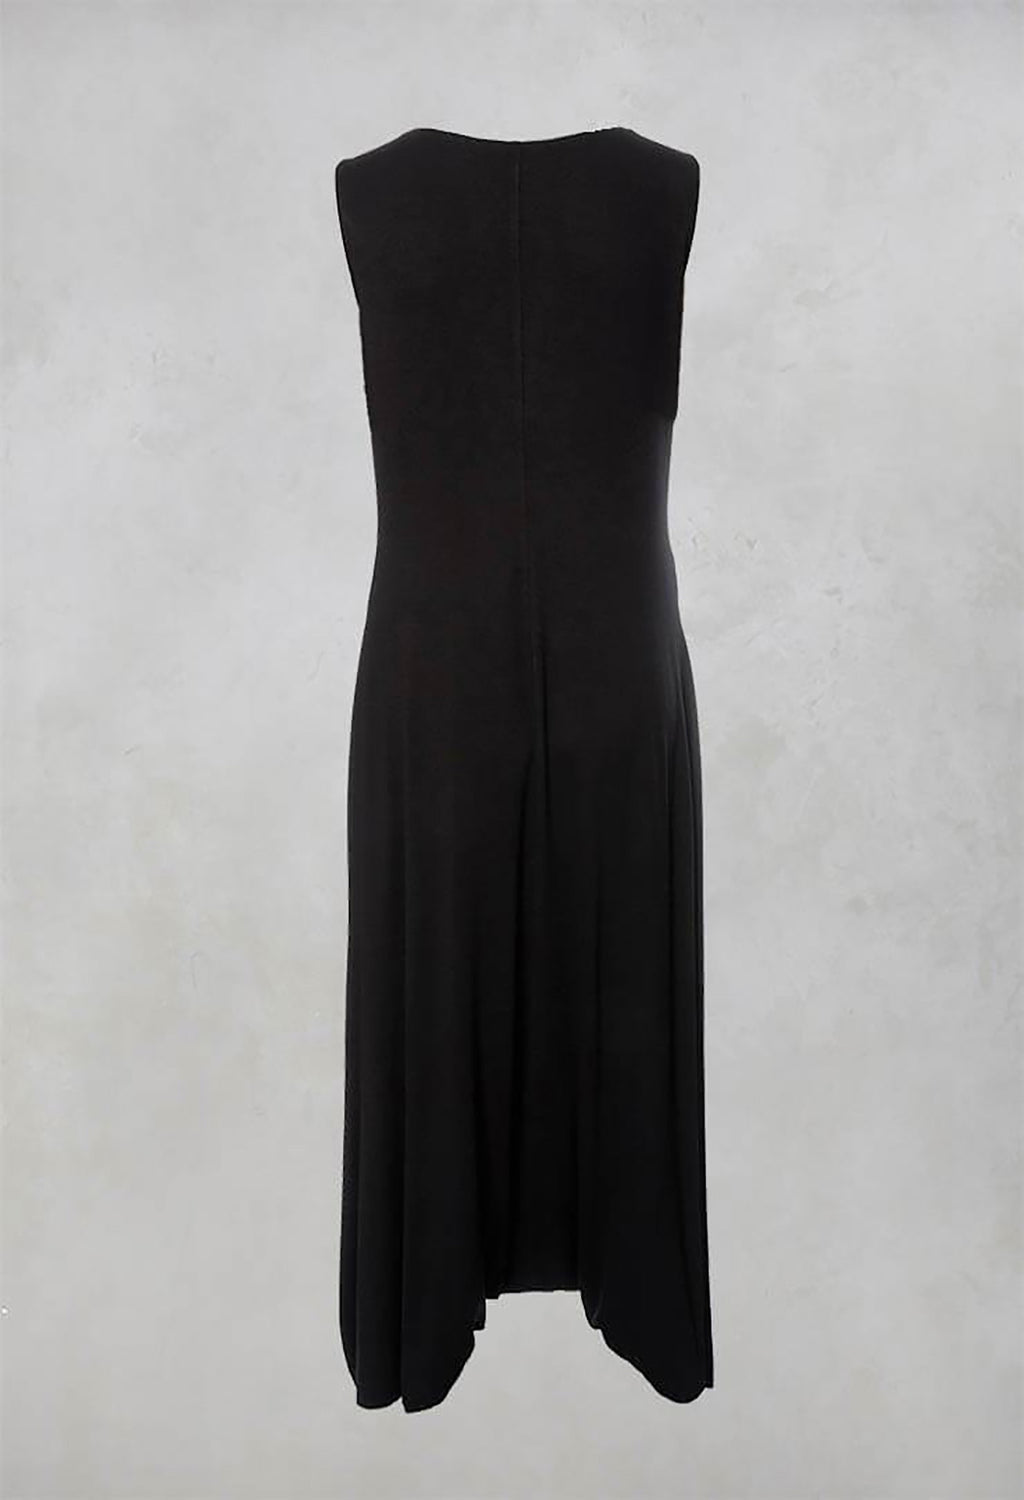 Sleeveless Dress Style Jumpsuit in Black